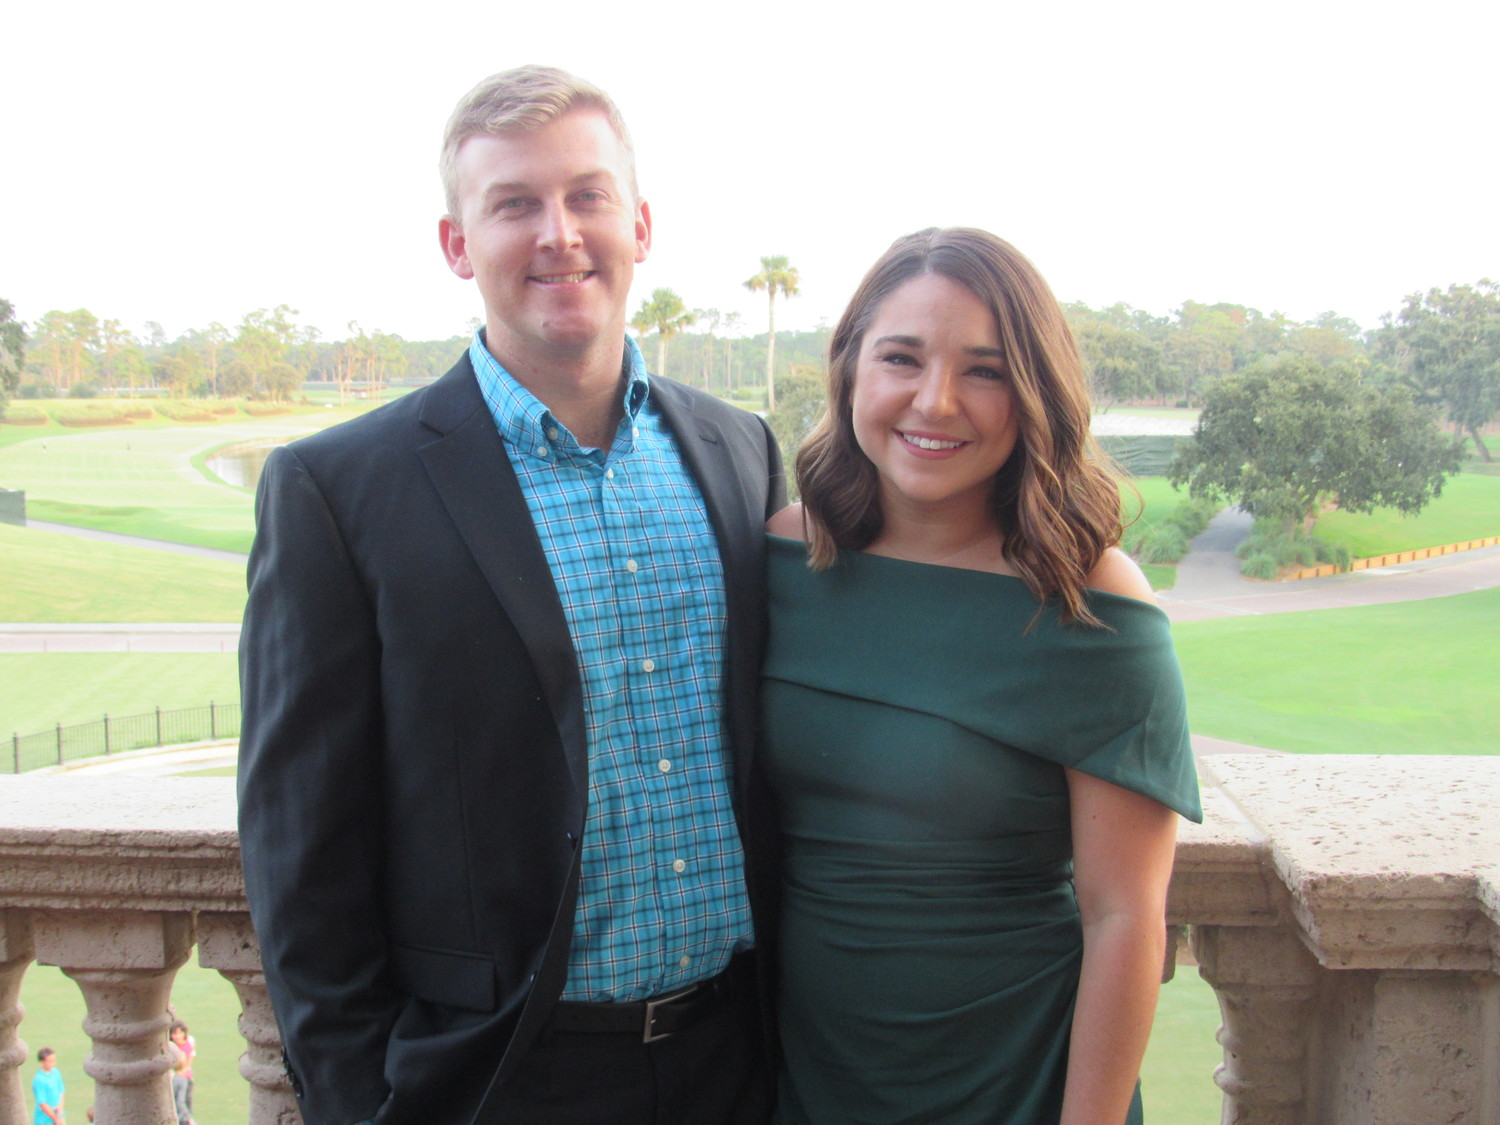 Jacksonville residents Austin and Kelsey Terhune attend the event at TPC Sawgrass.